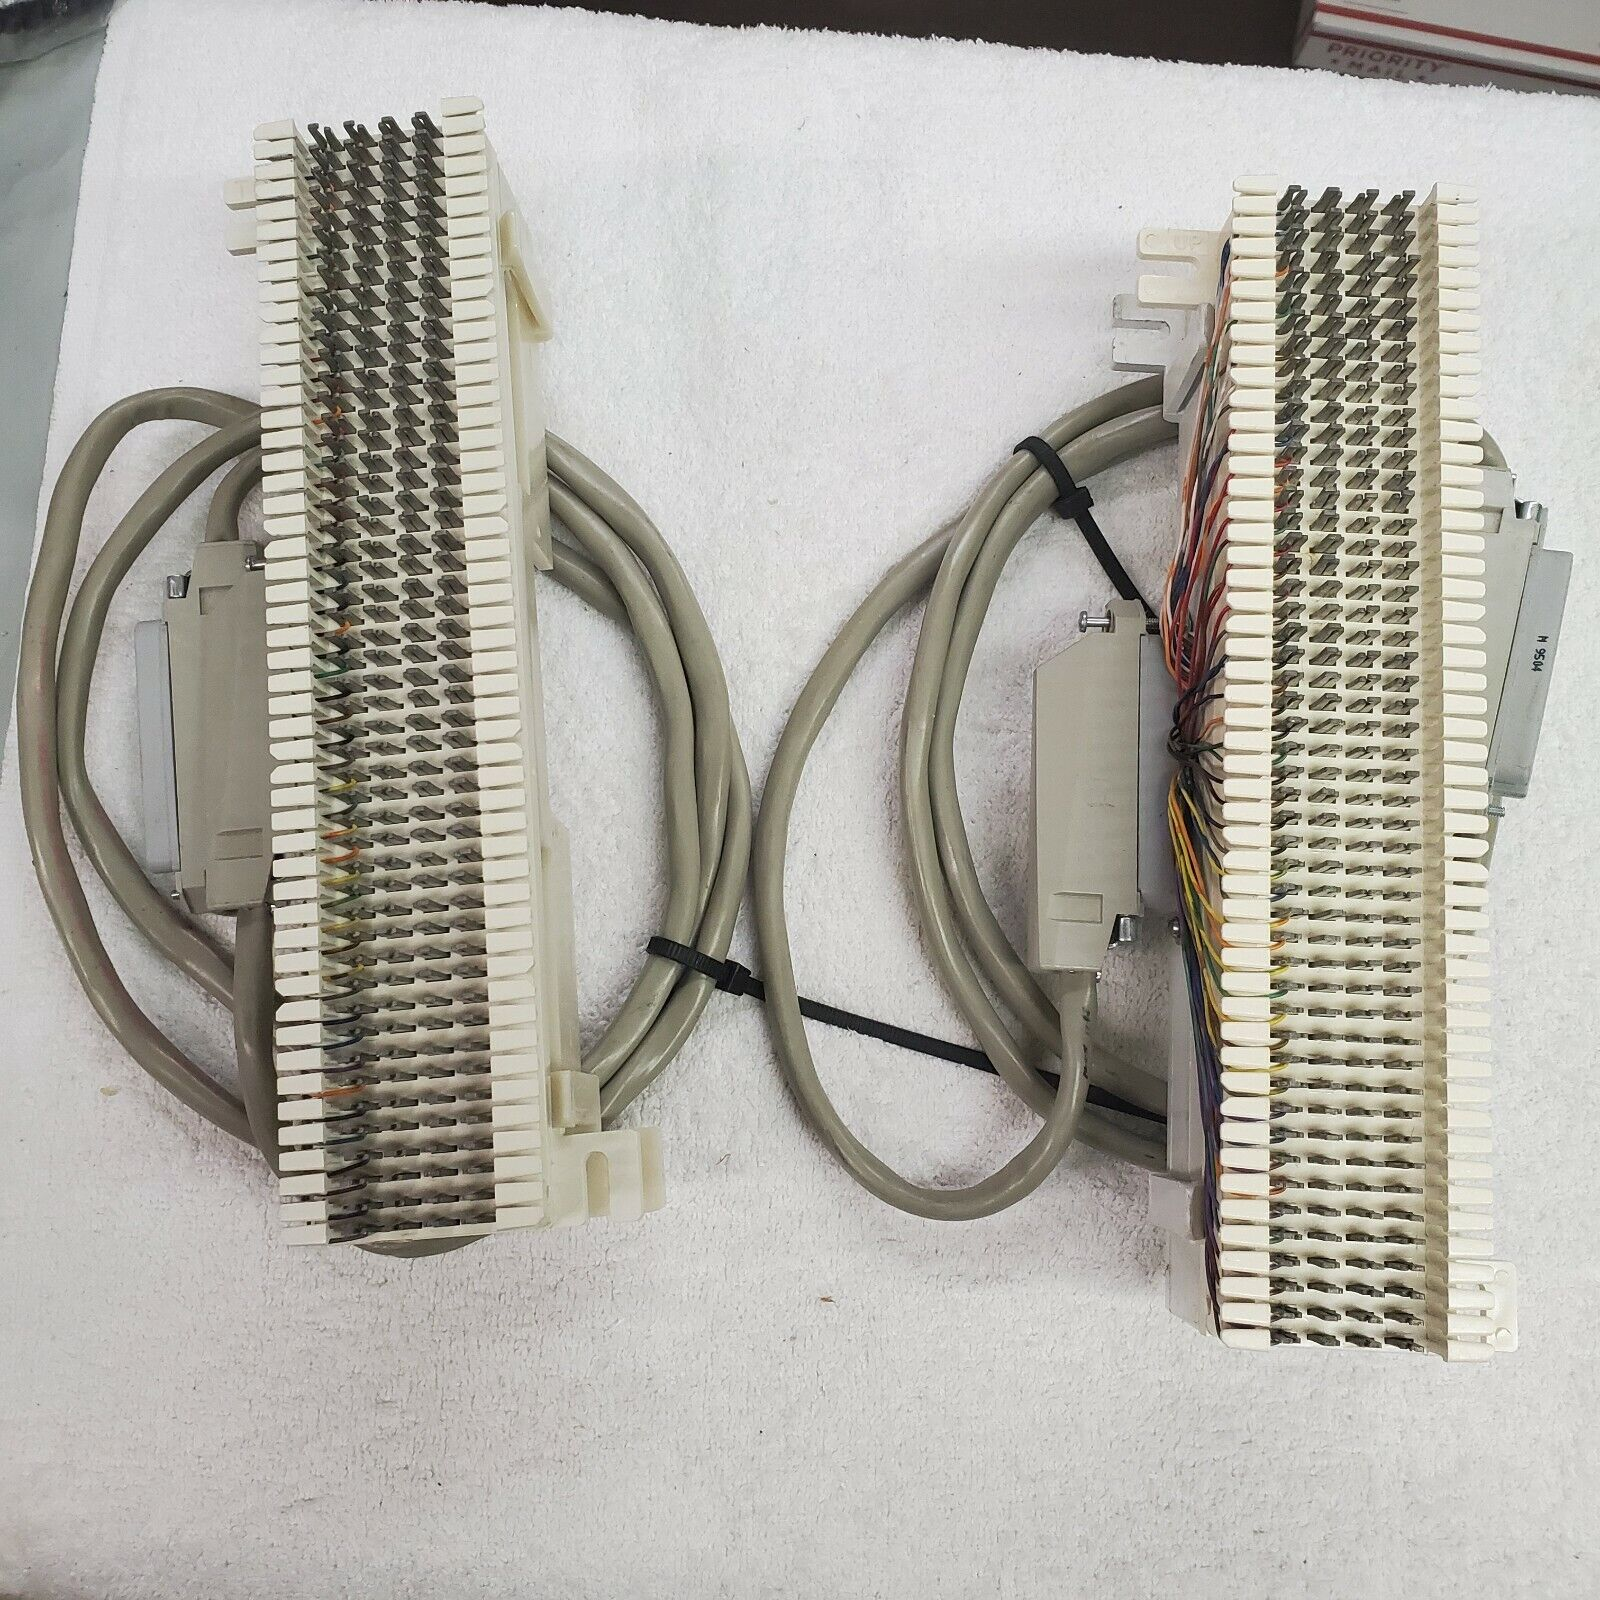 66M1-50 / TELCO / TELEPHONE BLOCKS 2 WITH 25 PAIR FEMALE CABLES - $25.00